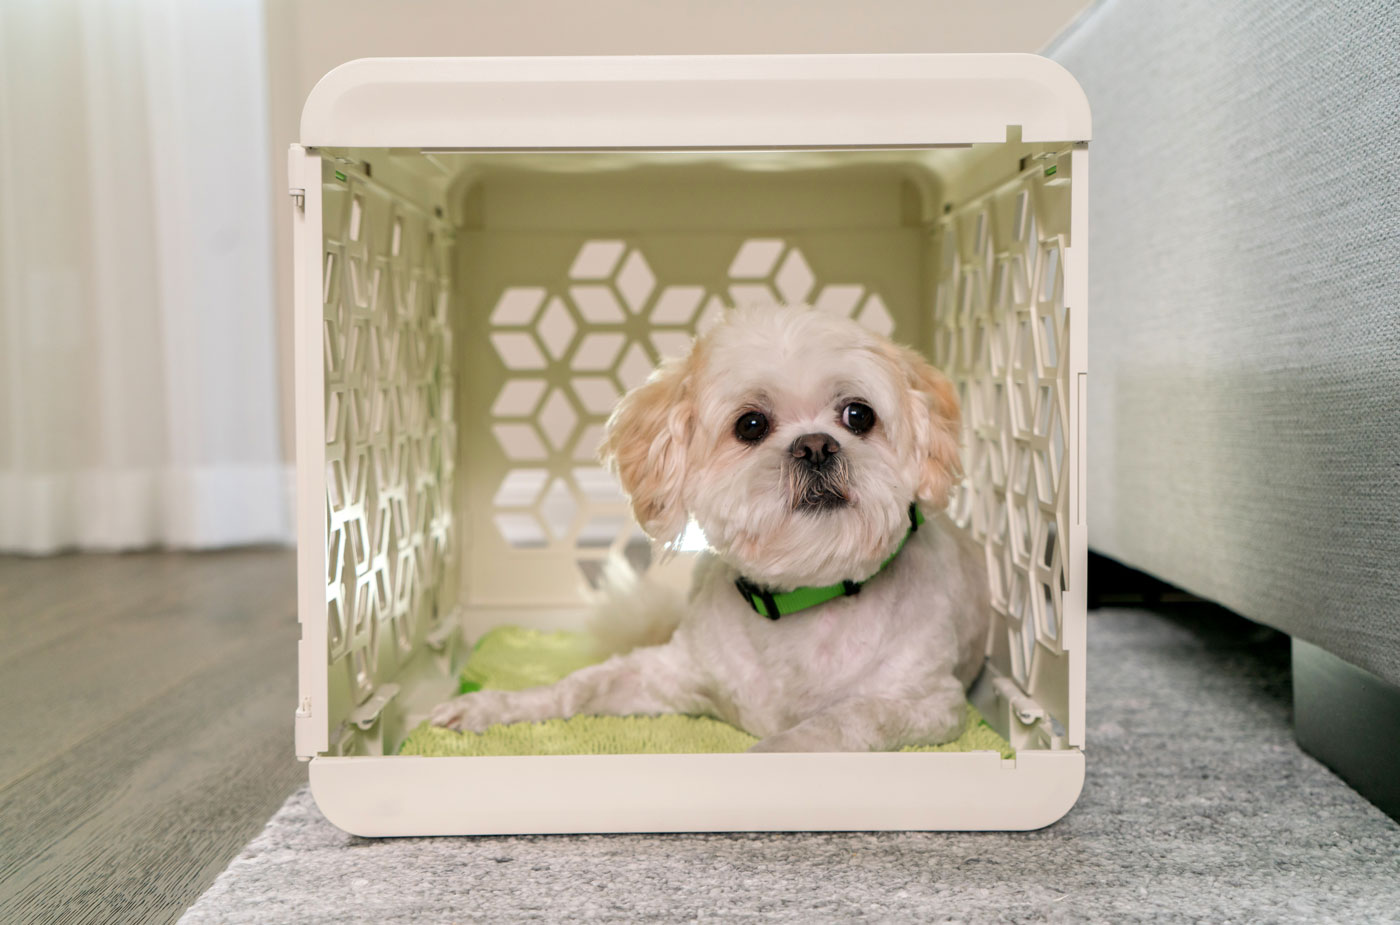 Amy Kim ofChasing Monkeyhad one goal when she launched PAWD: to create a premium, stylish dog crate that is also affordable. She succeeded! This crate is functional, gorgeous, and portable with a target price well under $100. Want to learn more? Check out our interview with Amy and enter to win one of your own!